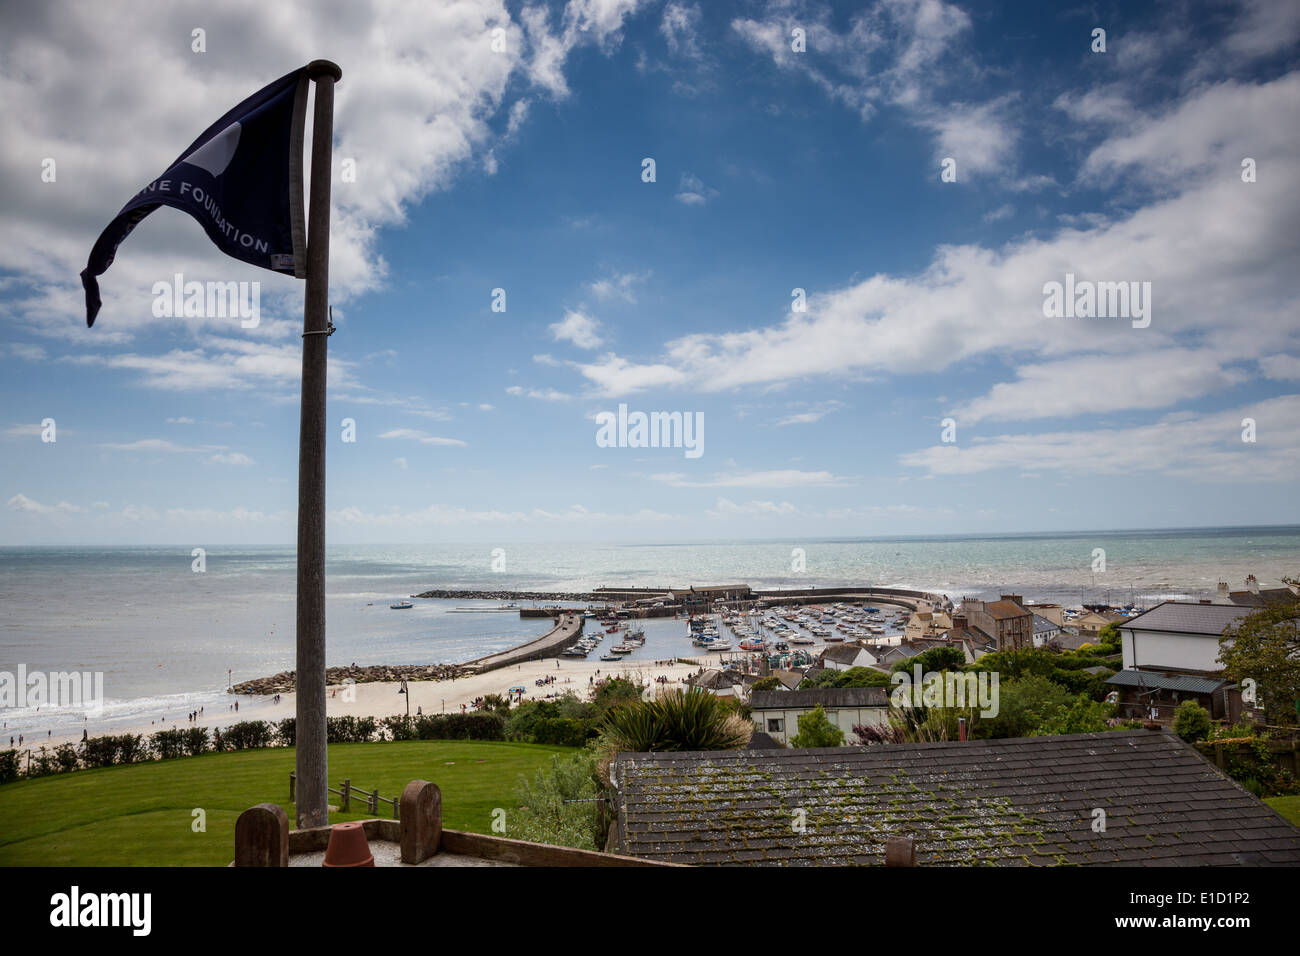 The view across The Cobb and Harbour from Hix's Oyster and Fish Bar, Lyme Regis, Dorset - Stock Image